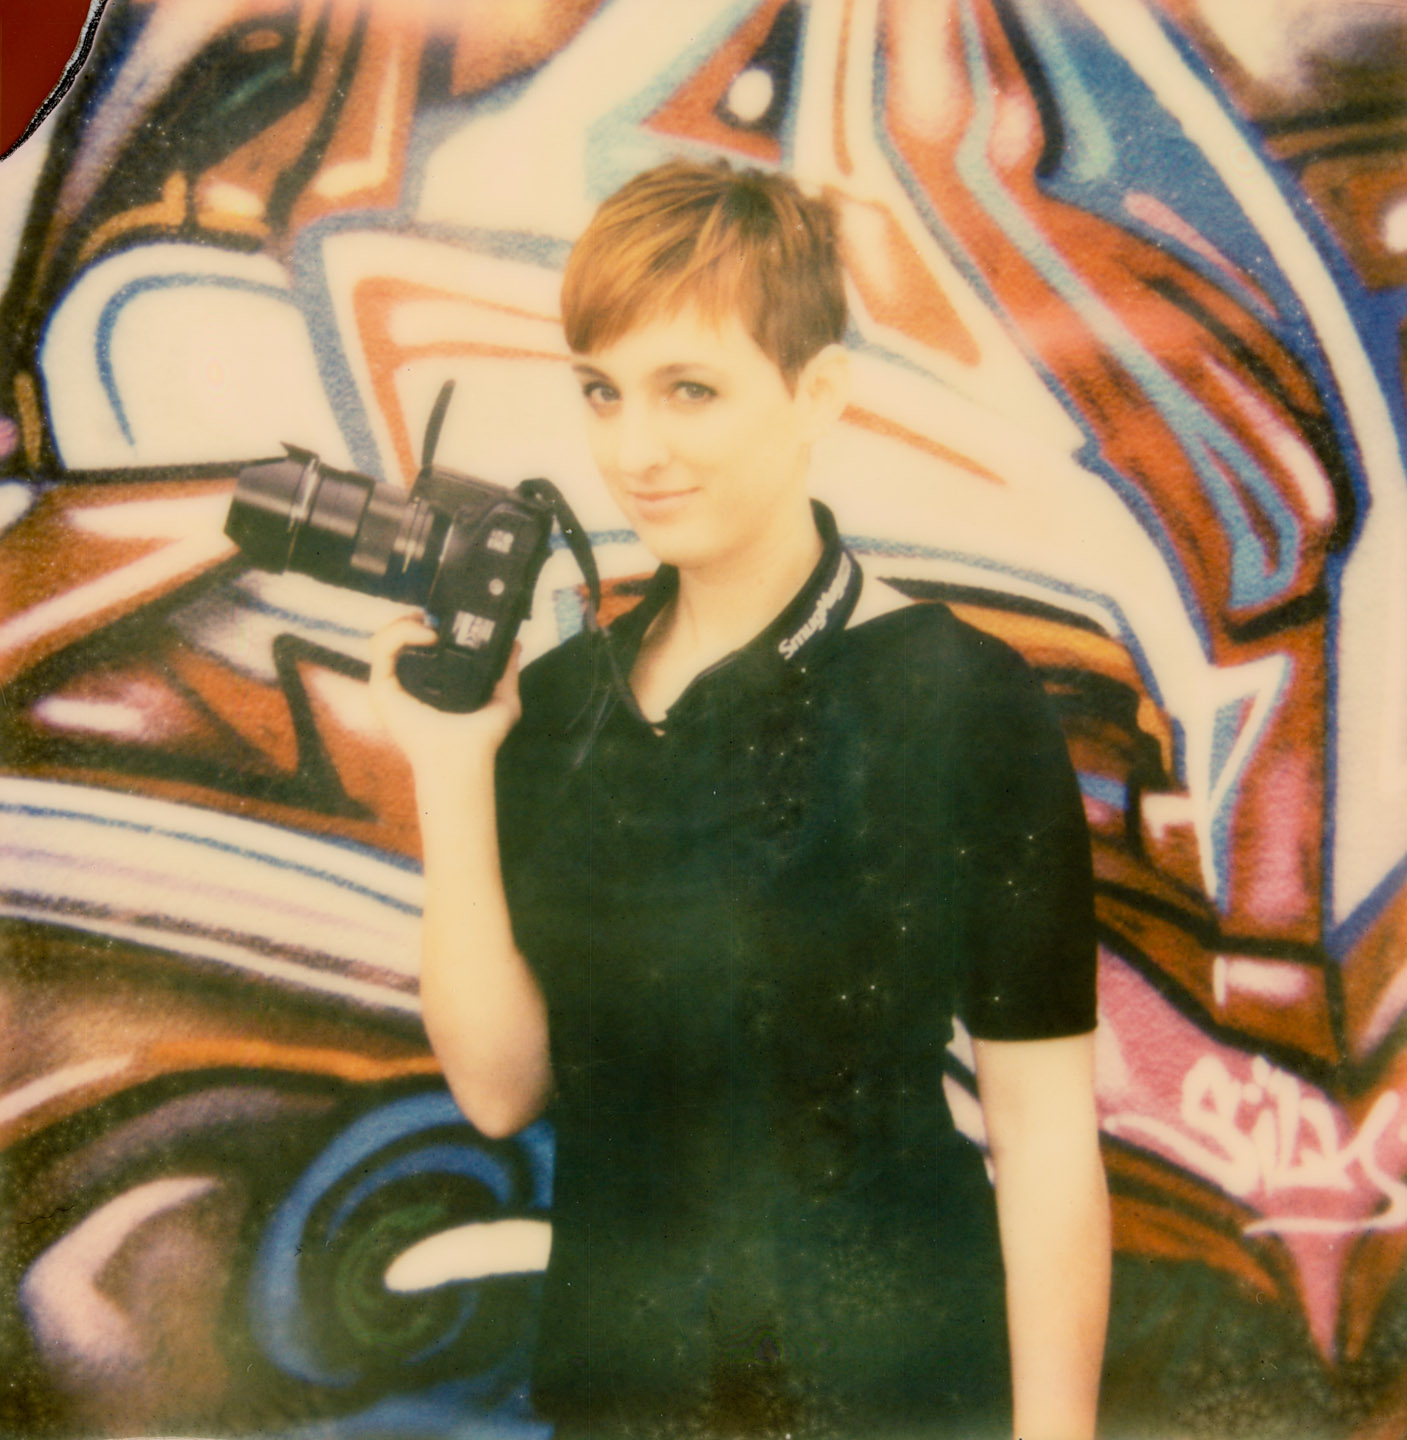 Pamela models her Canon 7D in front of a graffiti wall